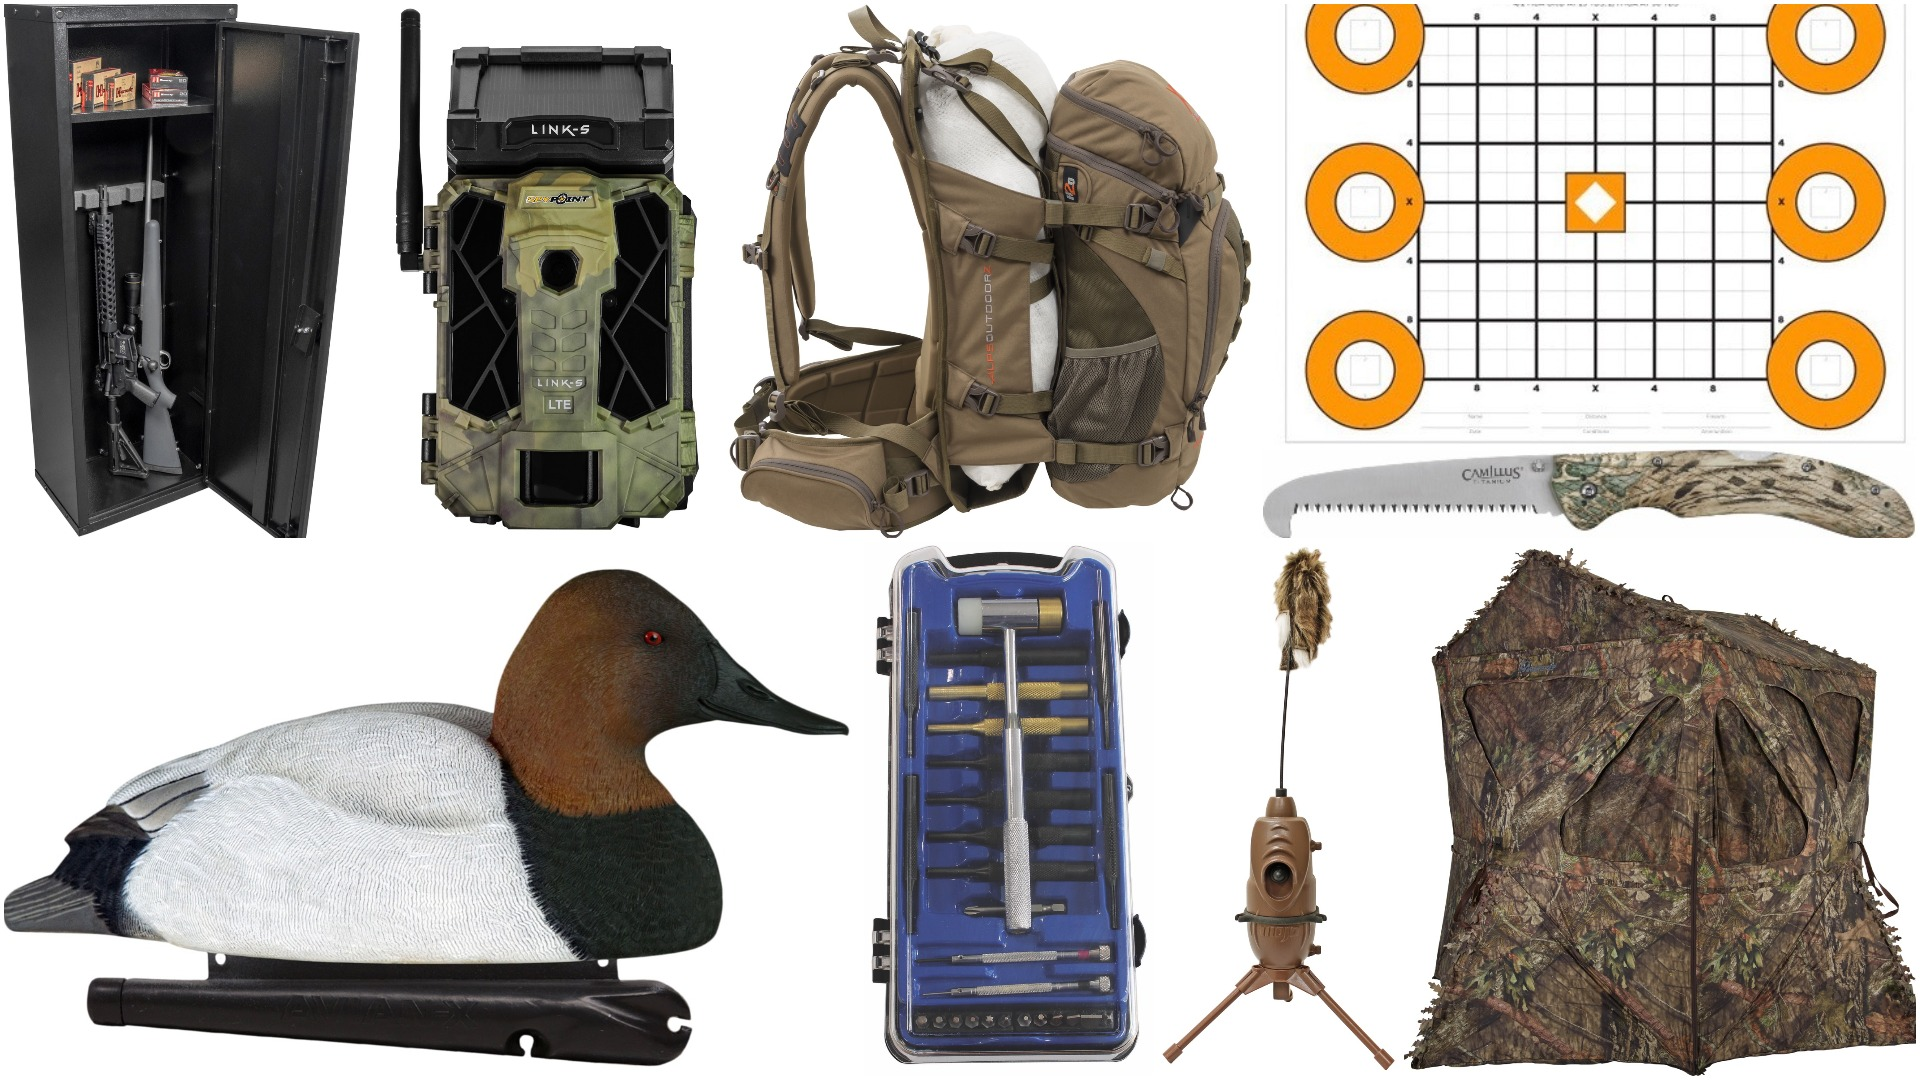 2018 S Best New Hunting Gear 11 Must Have Accessories For Heading Afield Page 4 Of 11 Outdoor Canada